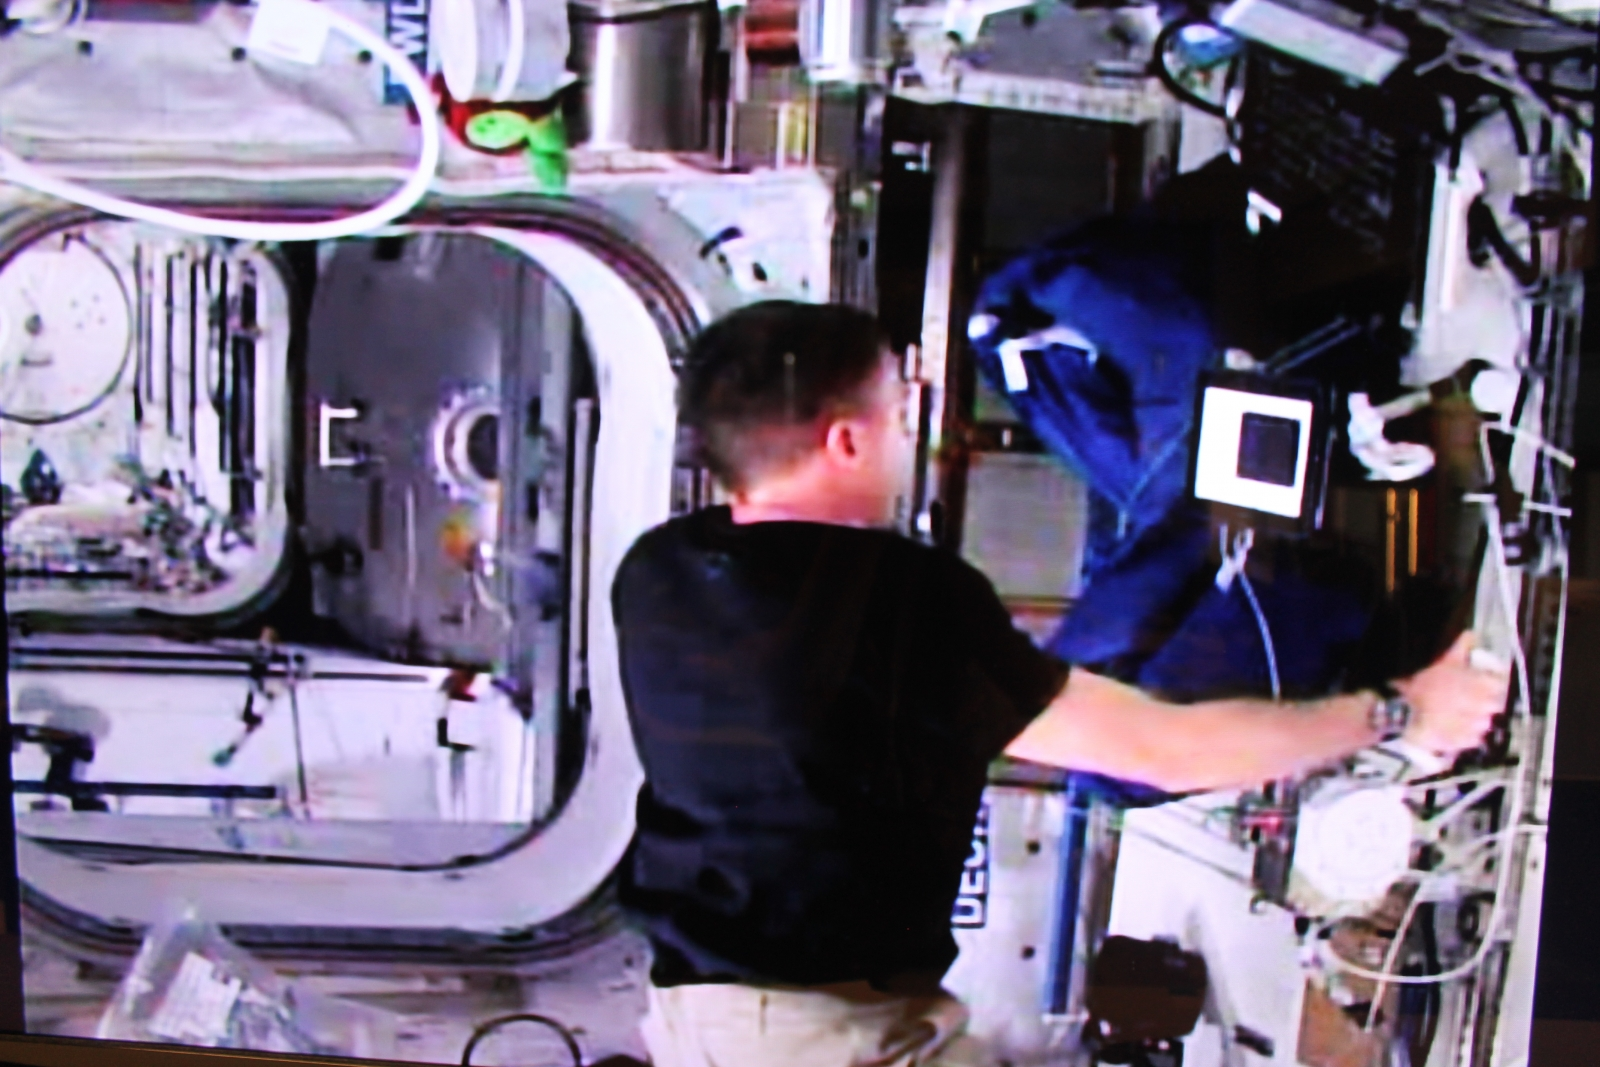 NASA astronaut Terry Virts tests the joystick